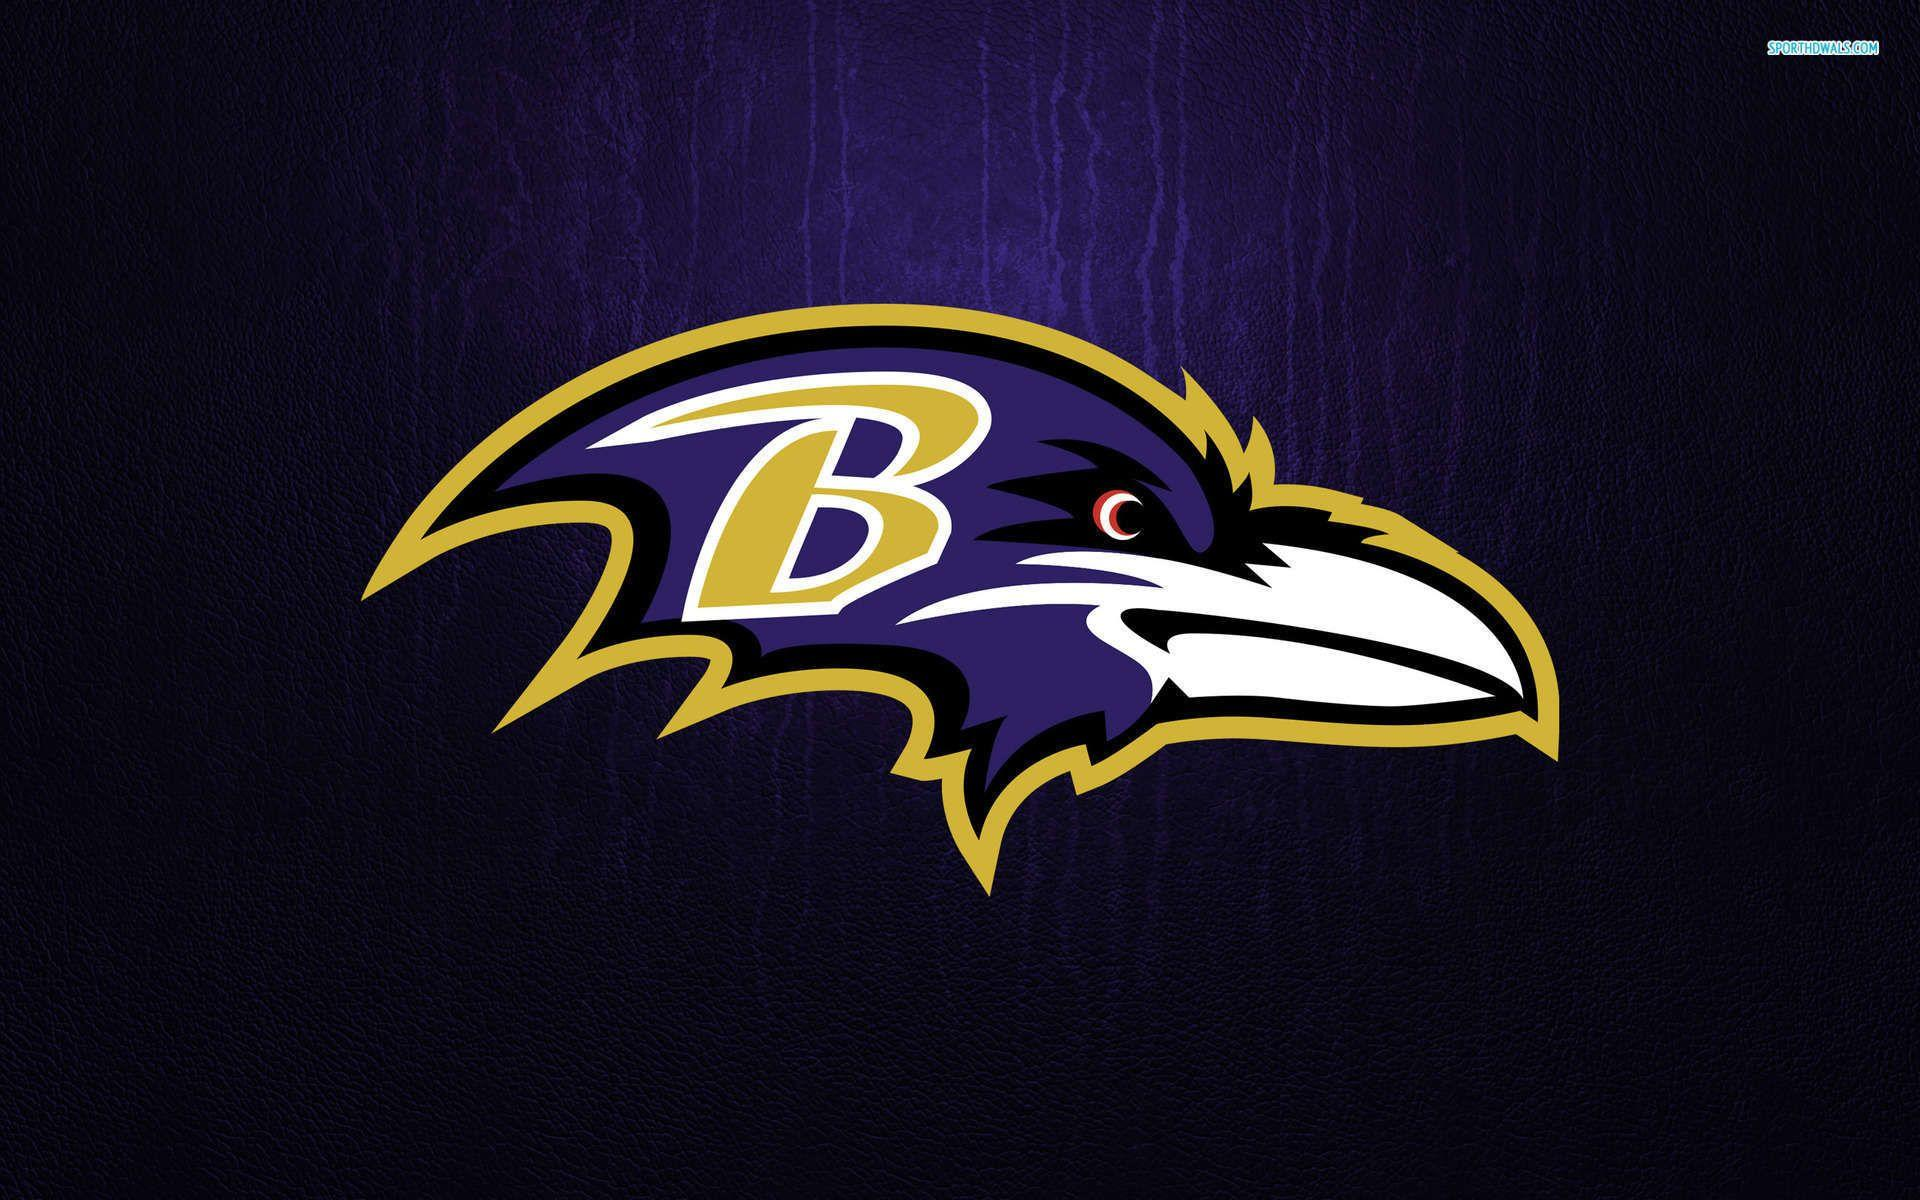 Baltimore Ravens Logo NFL Wallpaper HD | NFL Wallpaper | Pinterest ...